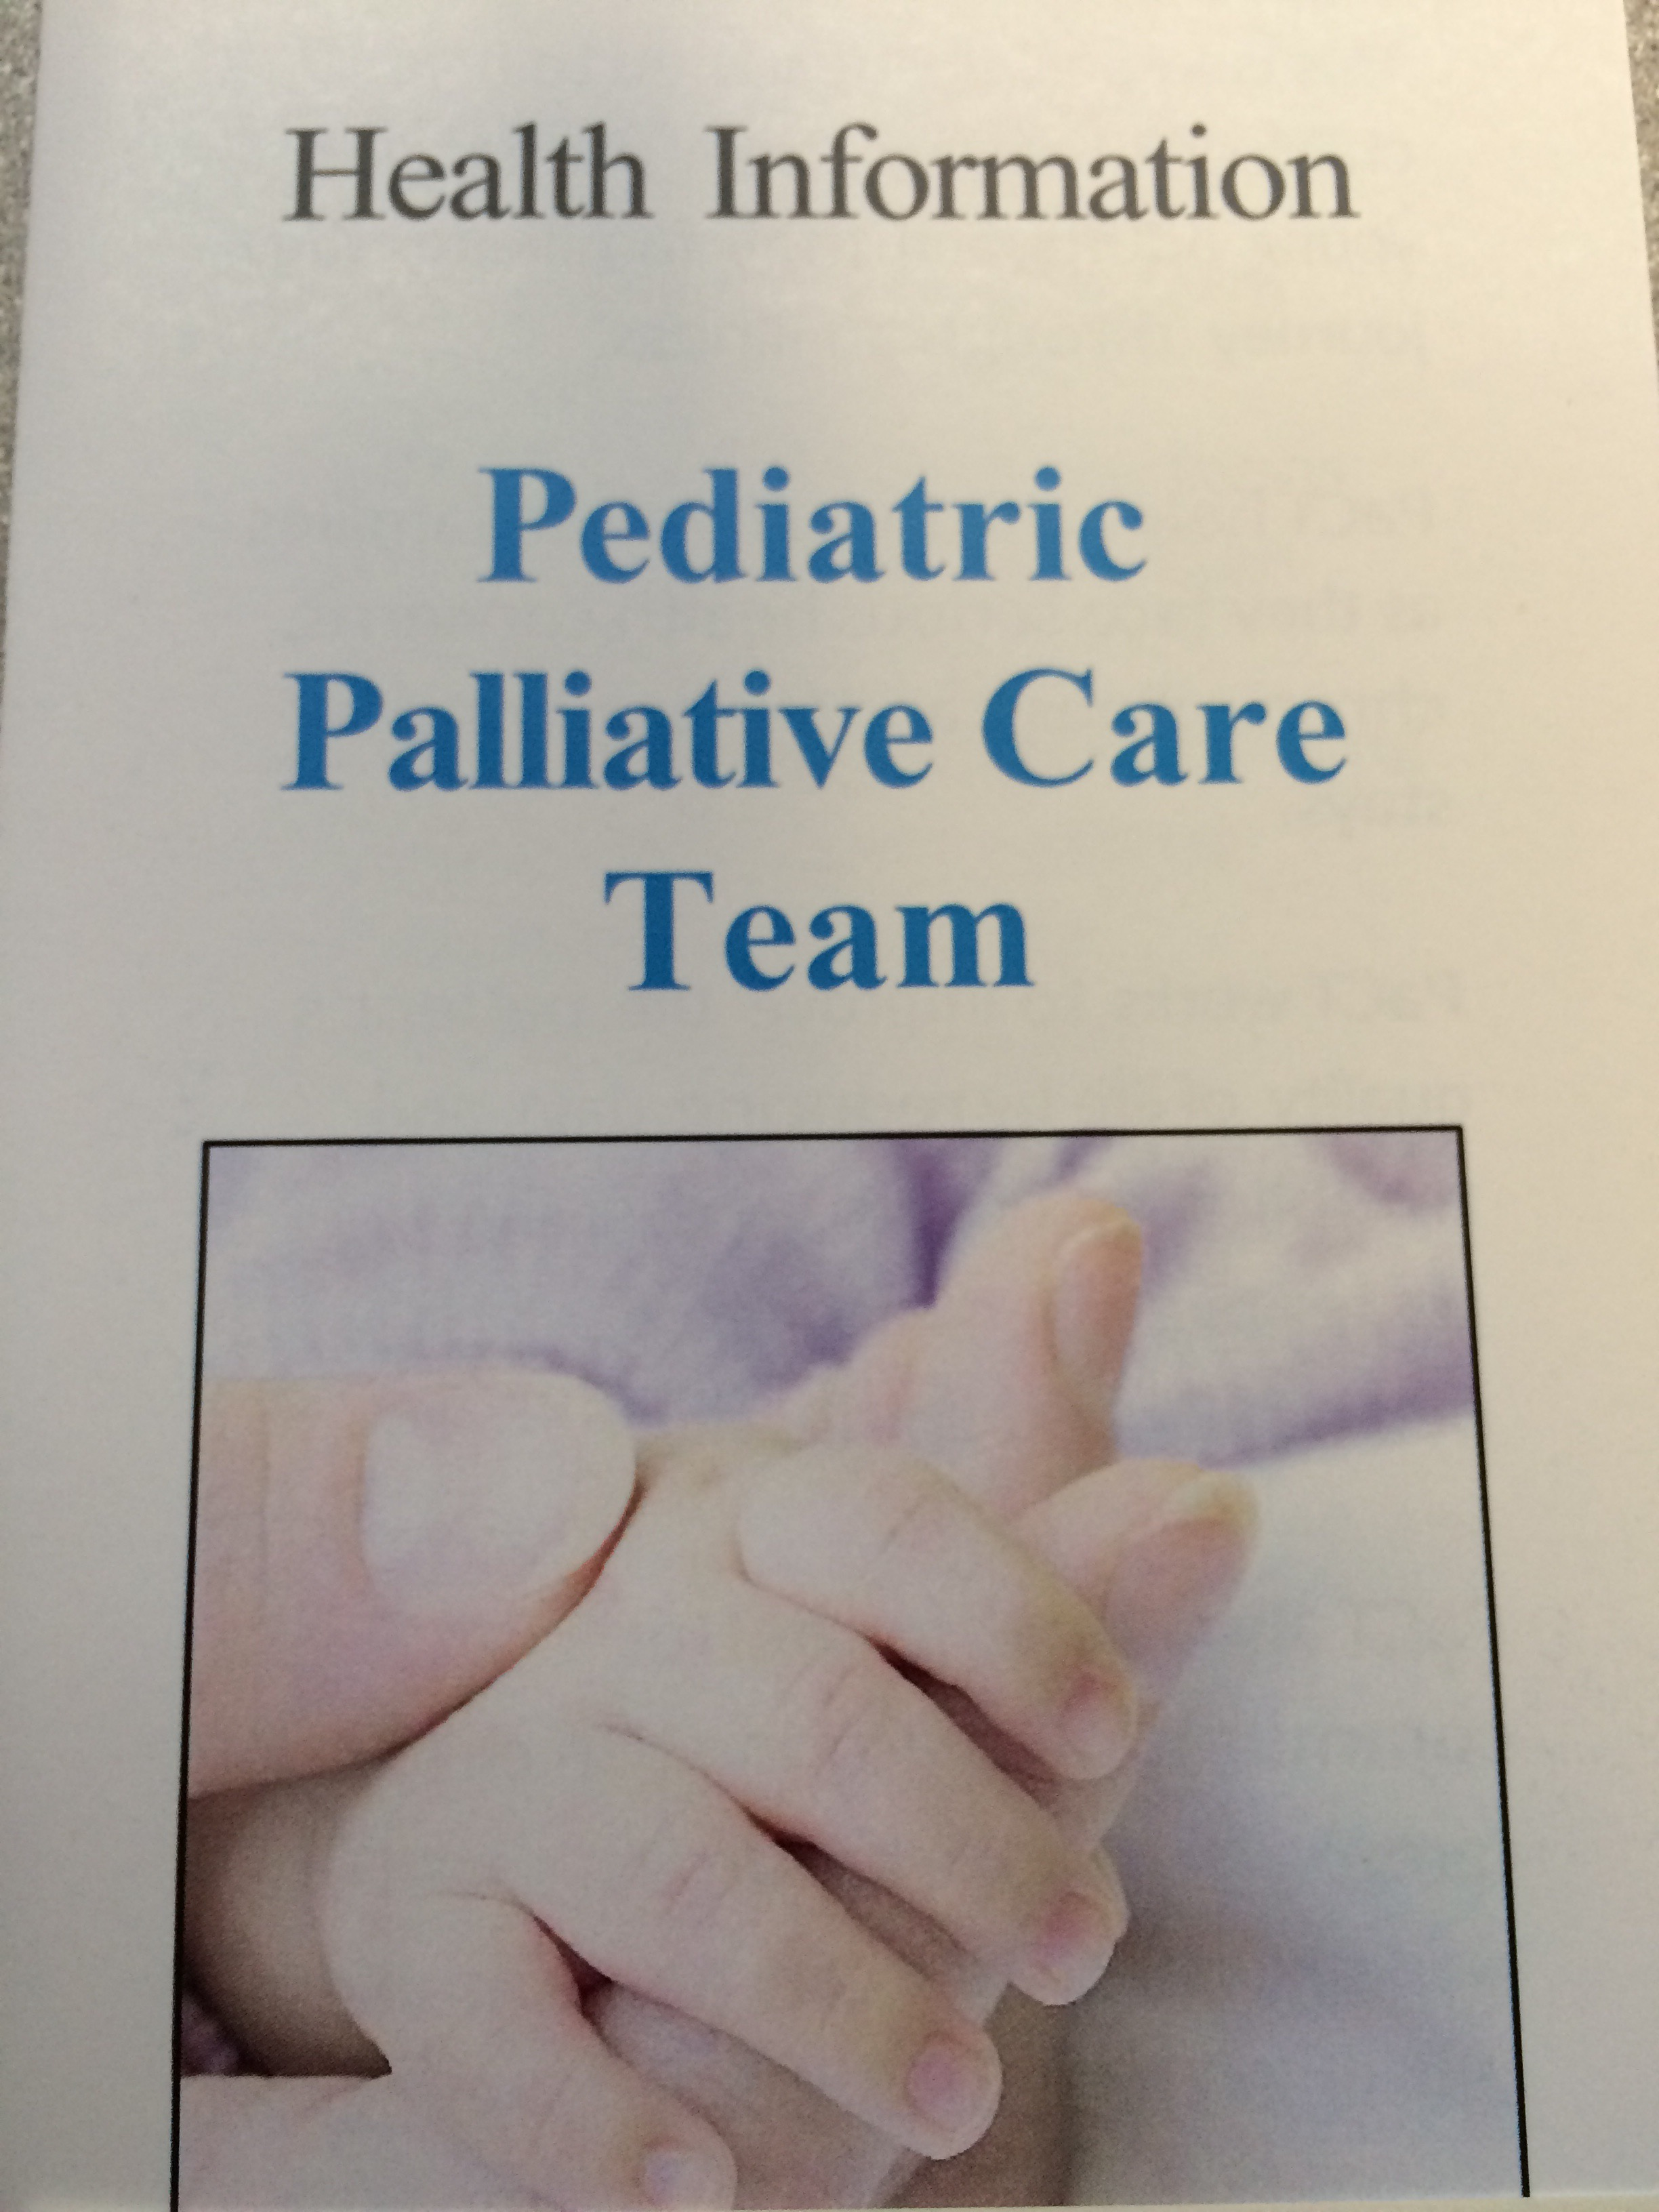 thesis palliative care Palliative care research papers discuss the medical approach in caring for patients with serious illnesses, focusing on the relief of pain and stress symptoms.